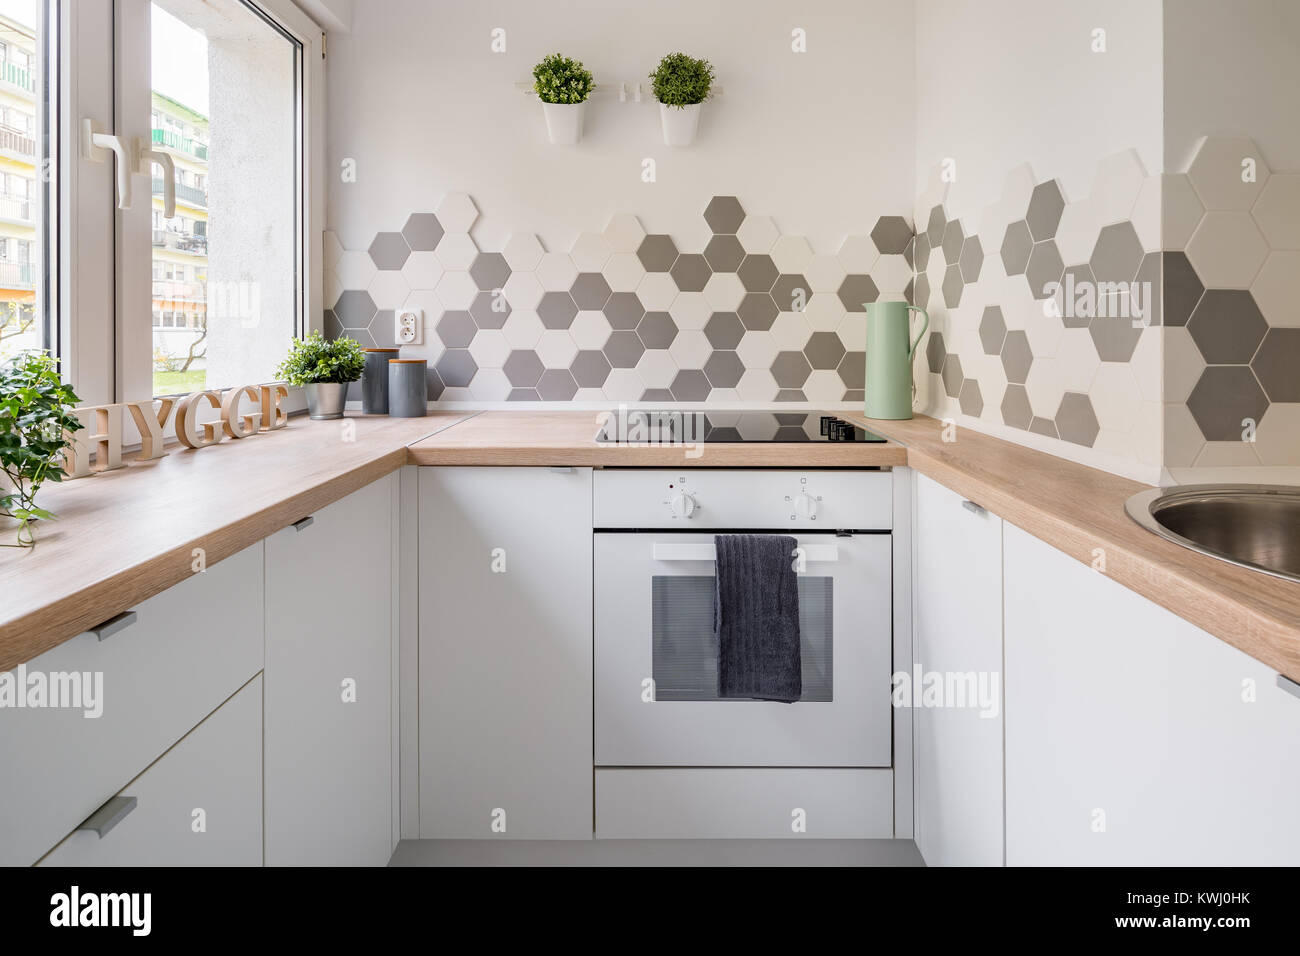 White Hygge Kitchen With Hexagonal Tiles Wooden